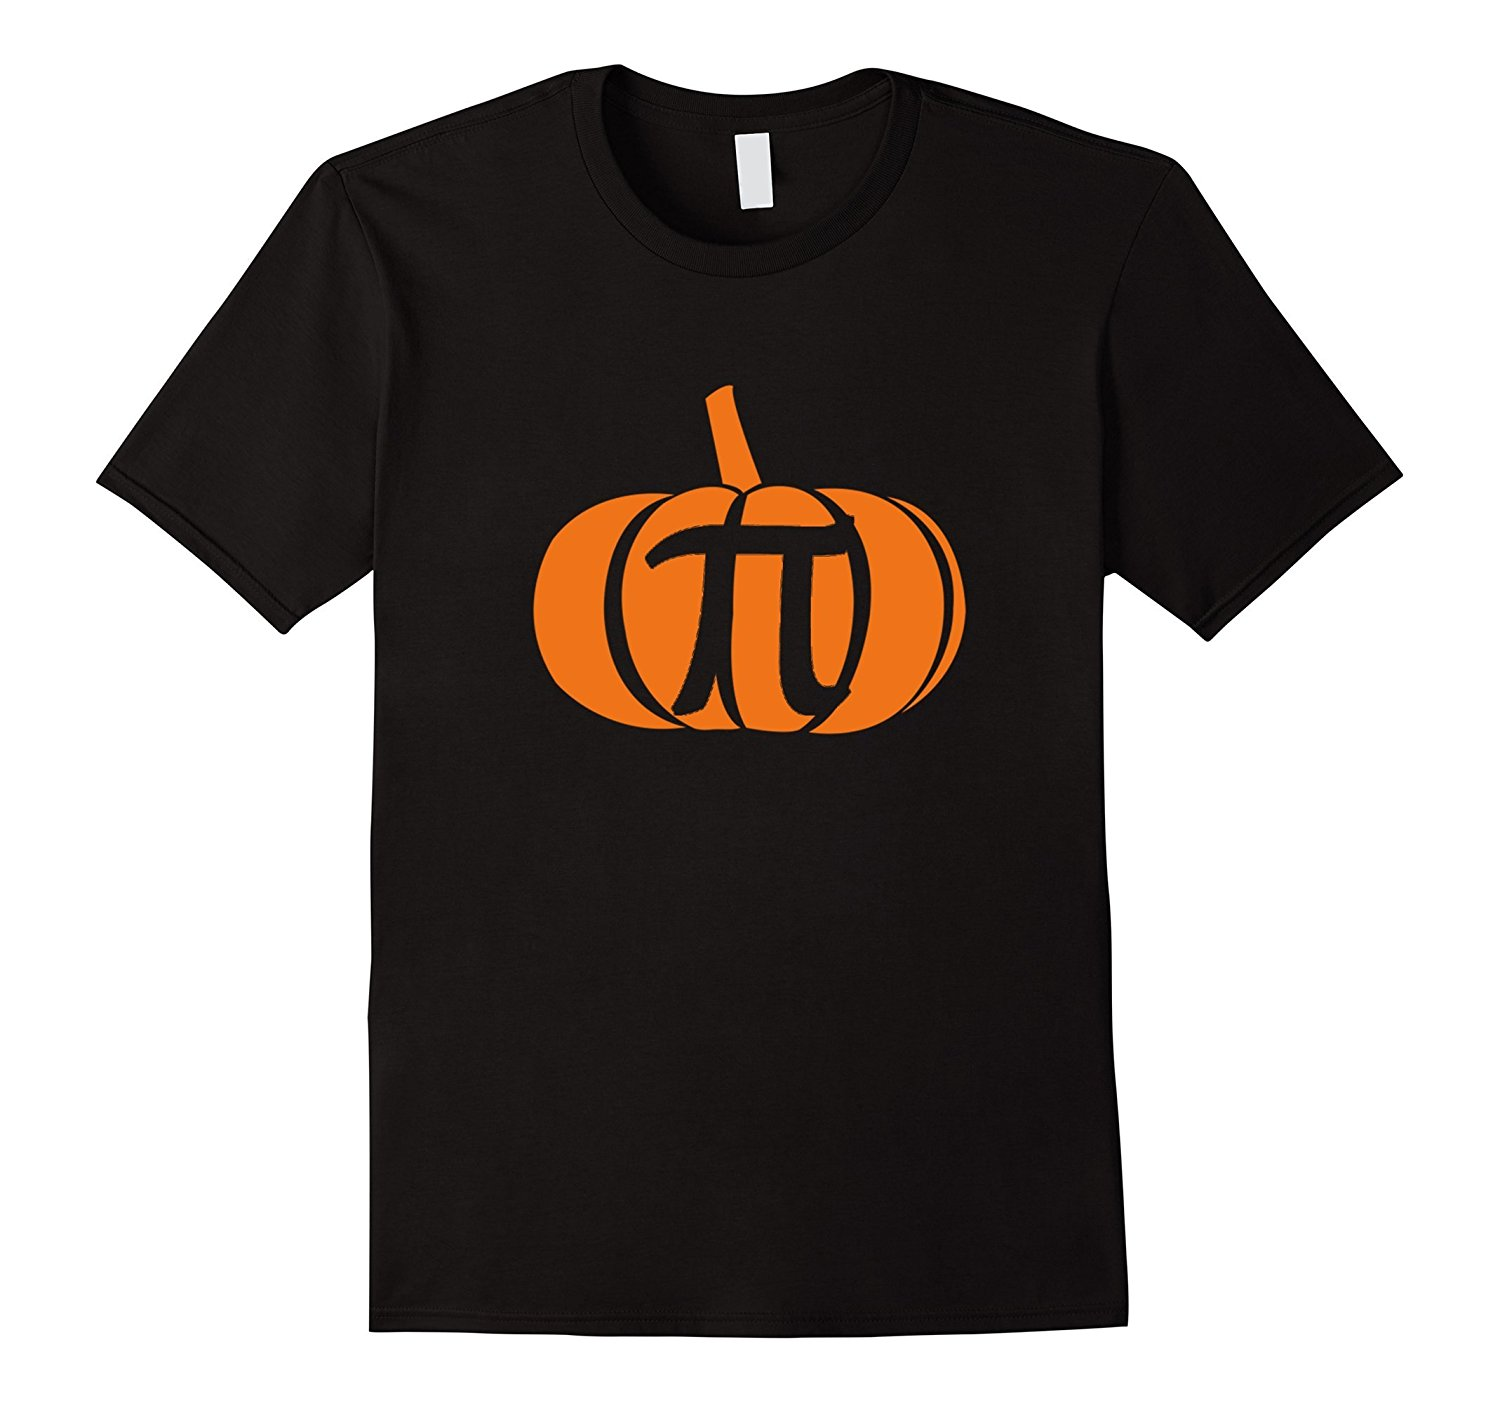 Funny Pumpkin Pi Pun Math T-Shirt March 14 3.14